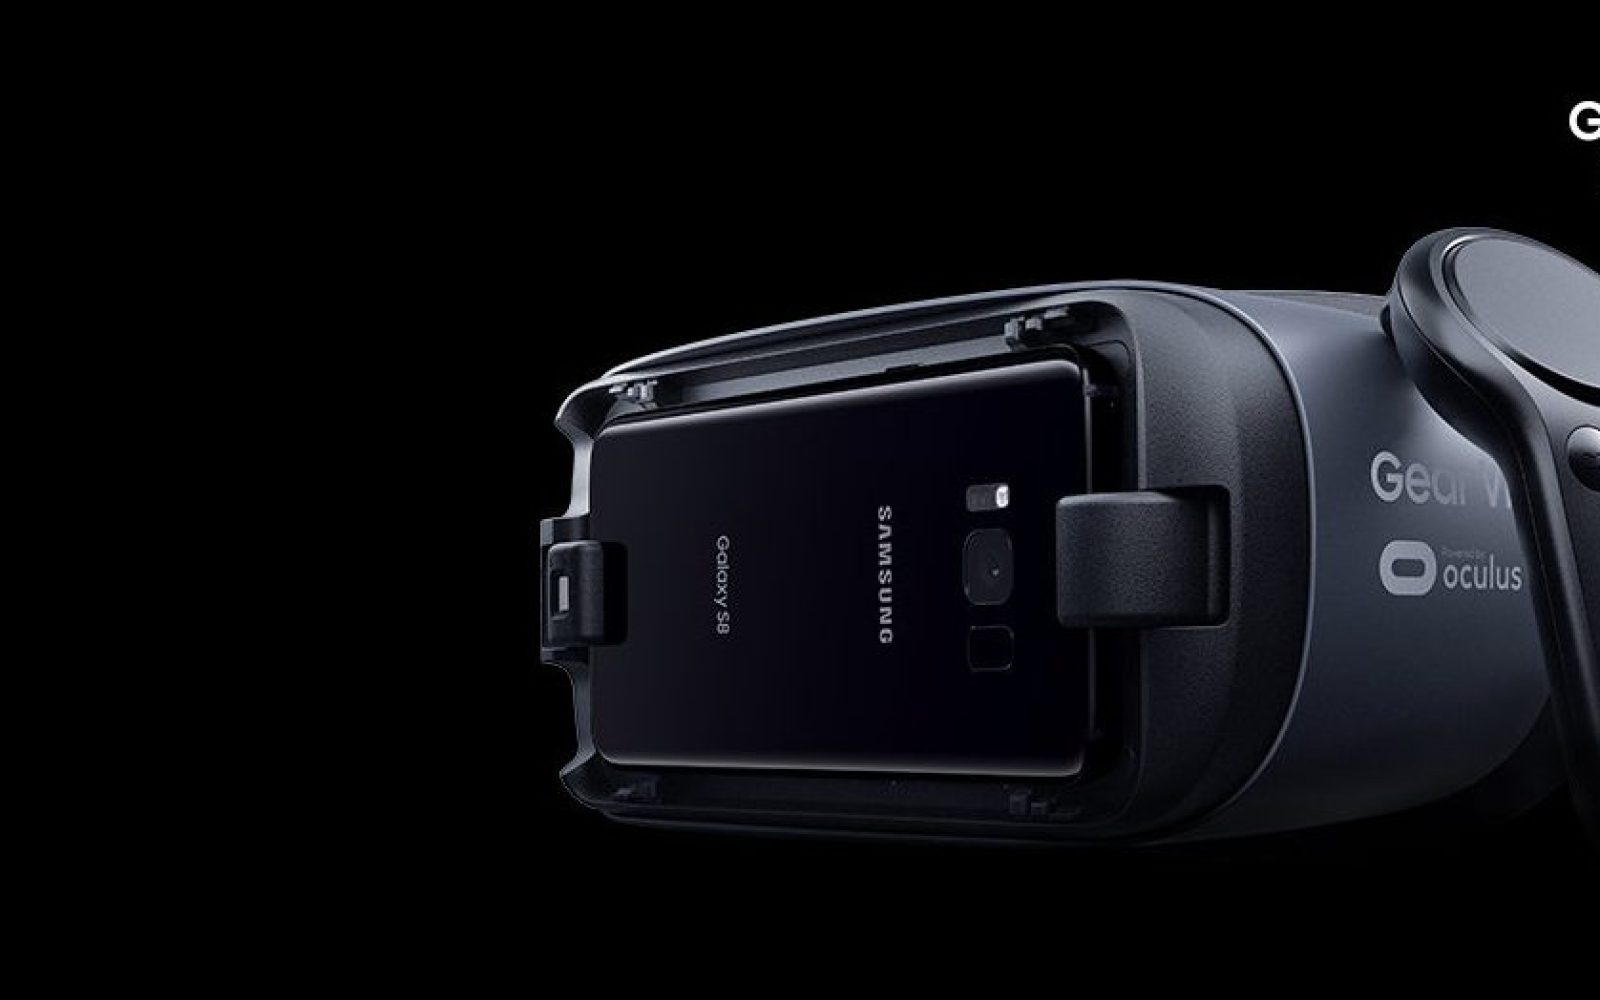 Samsung Gear VR headset now comes with a new controller, and will